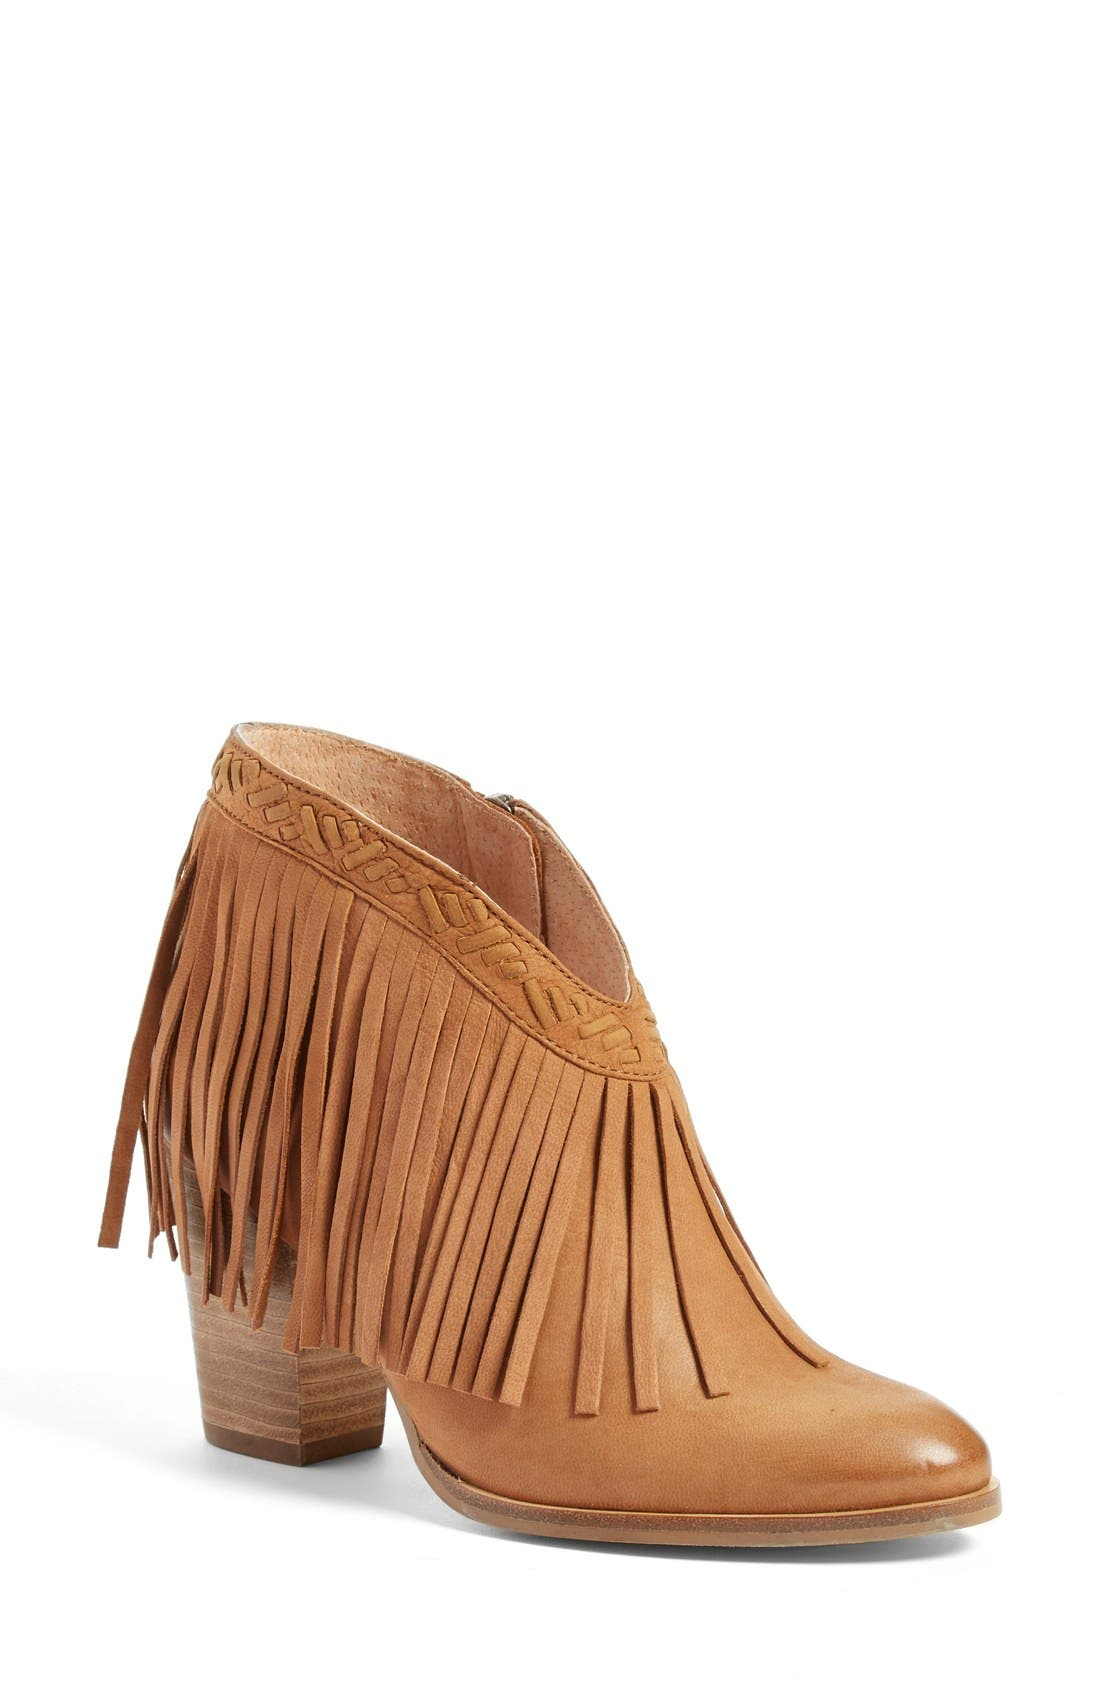 Main Image - Seychelles 'World Tour' Fringe Bootie (Women)